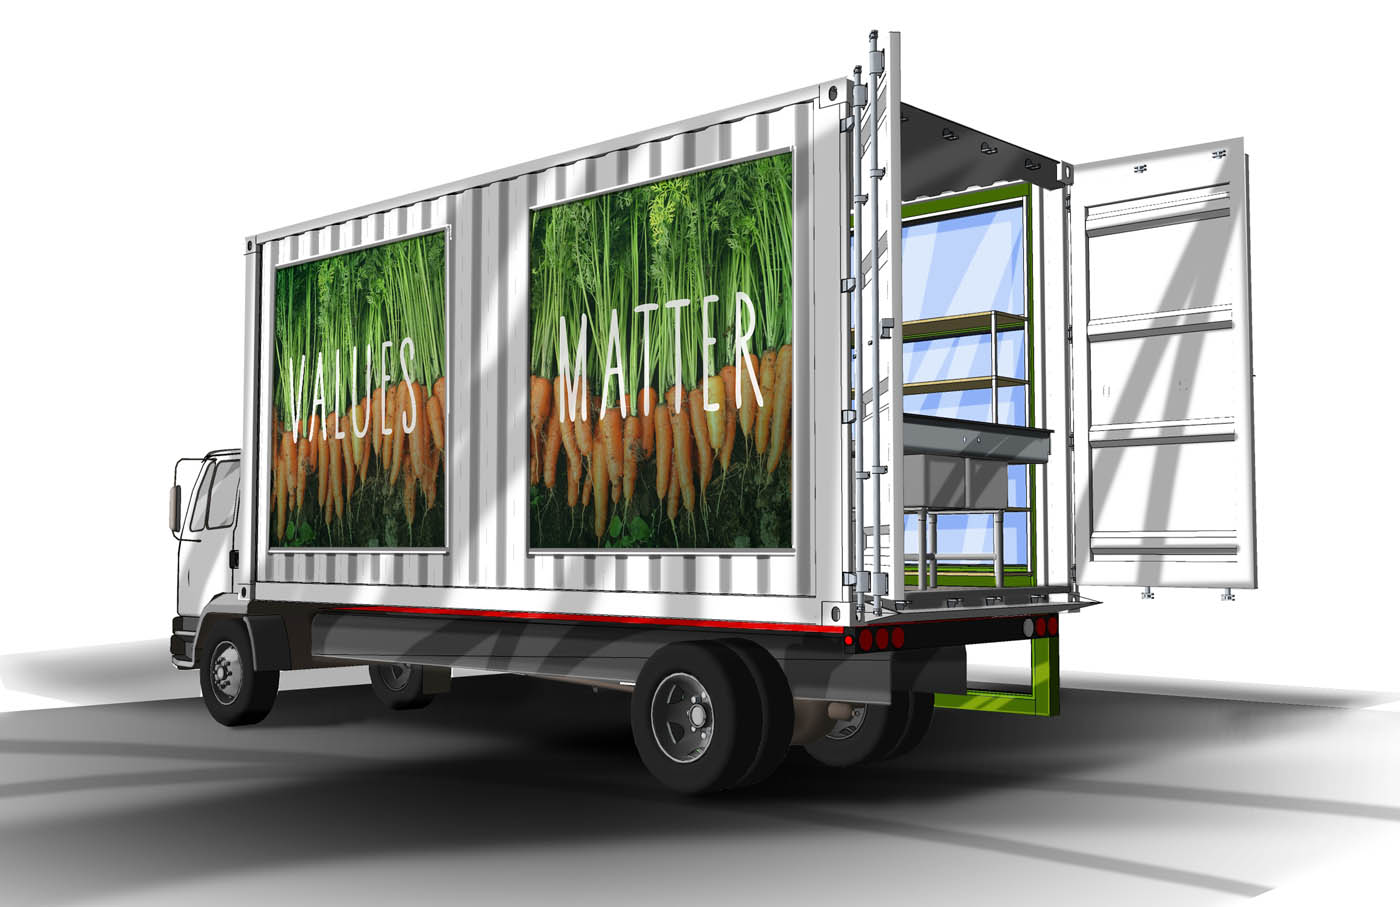 Build A Truck >> Whole Foods Market Food Truck Concept - DL English Design | DL English Design